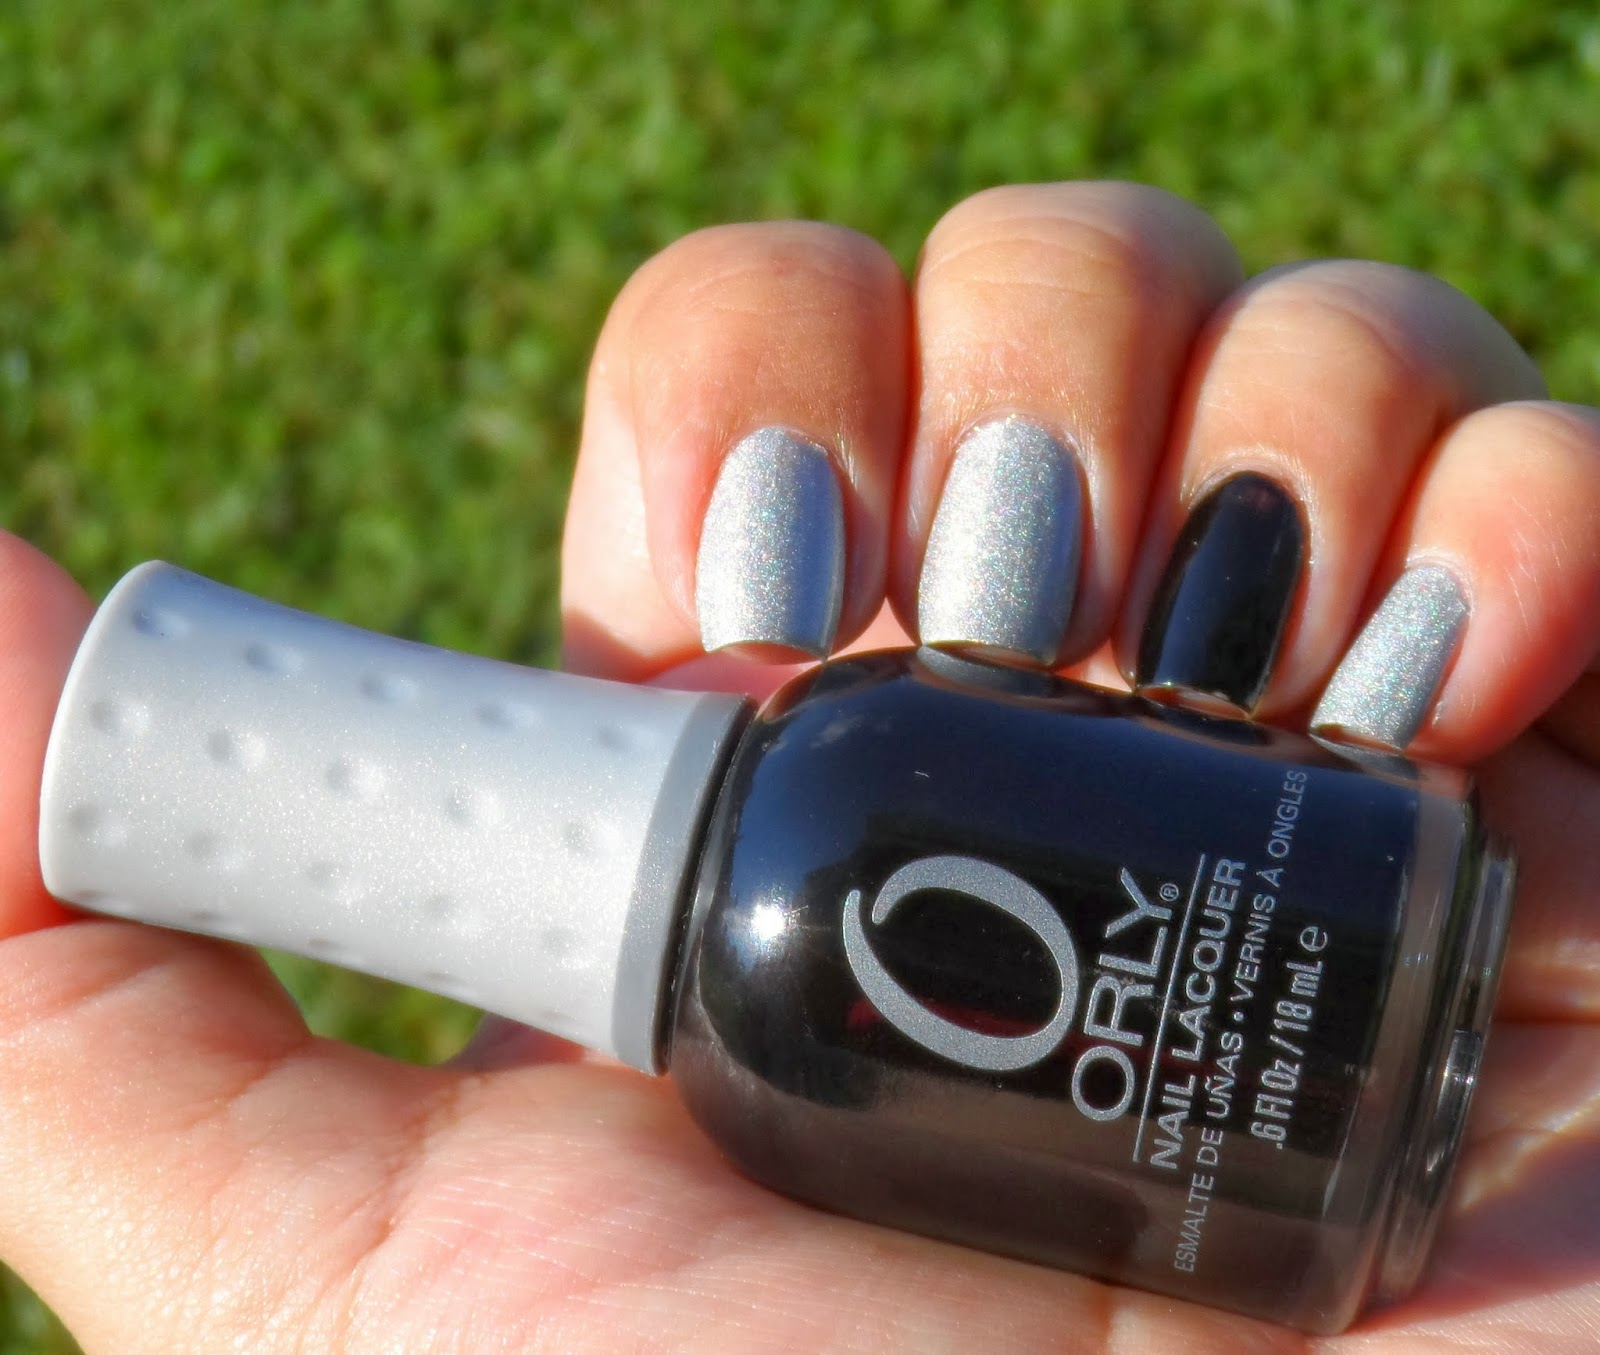 Just Me and My Nails: One, two Freddy\'s coming for you